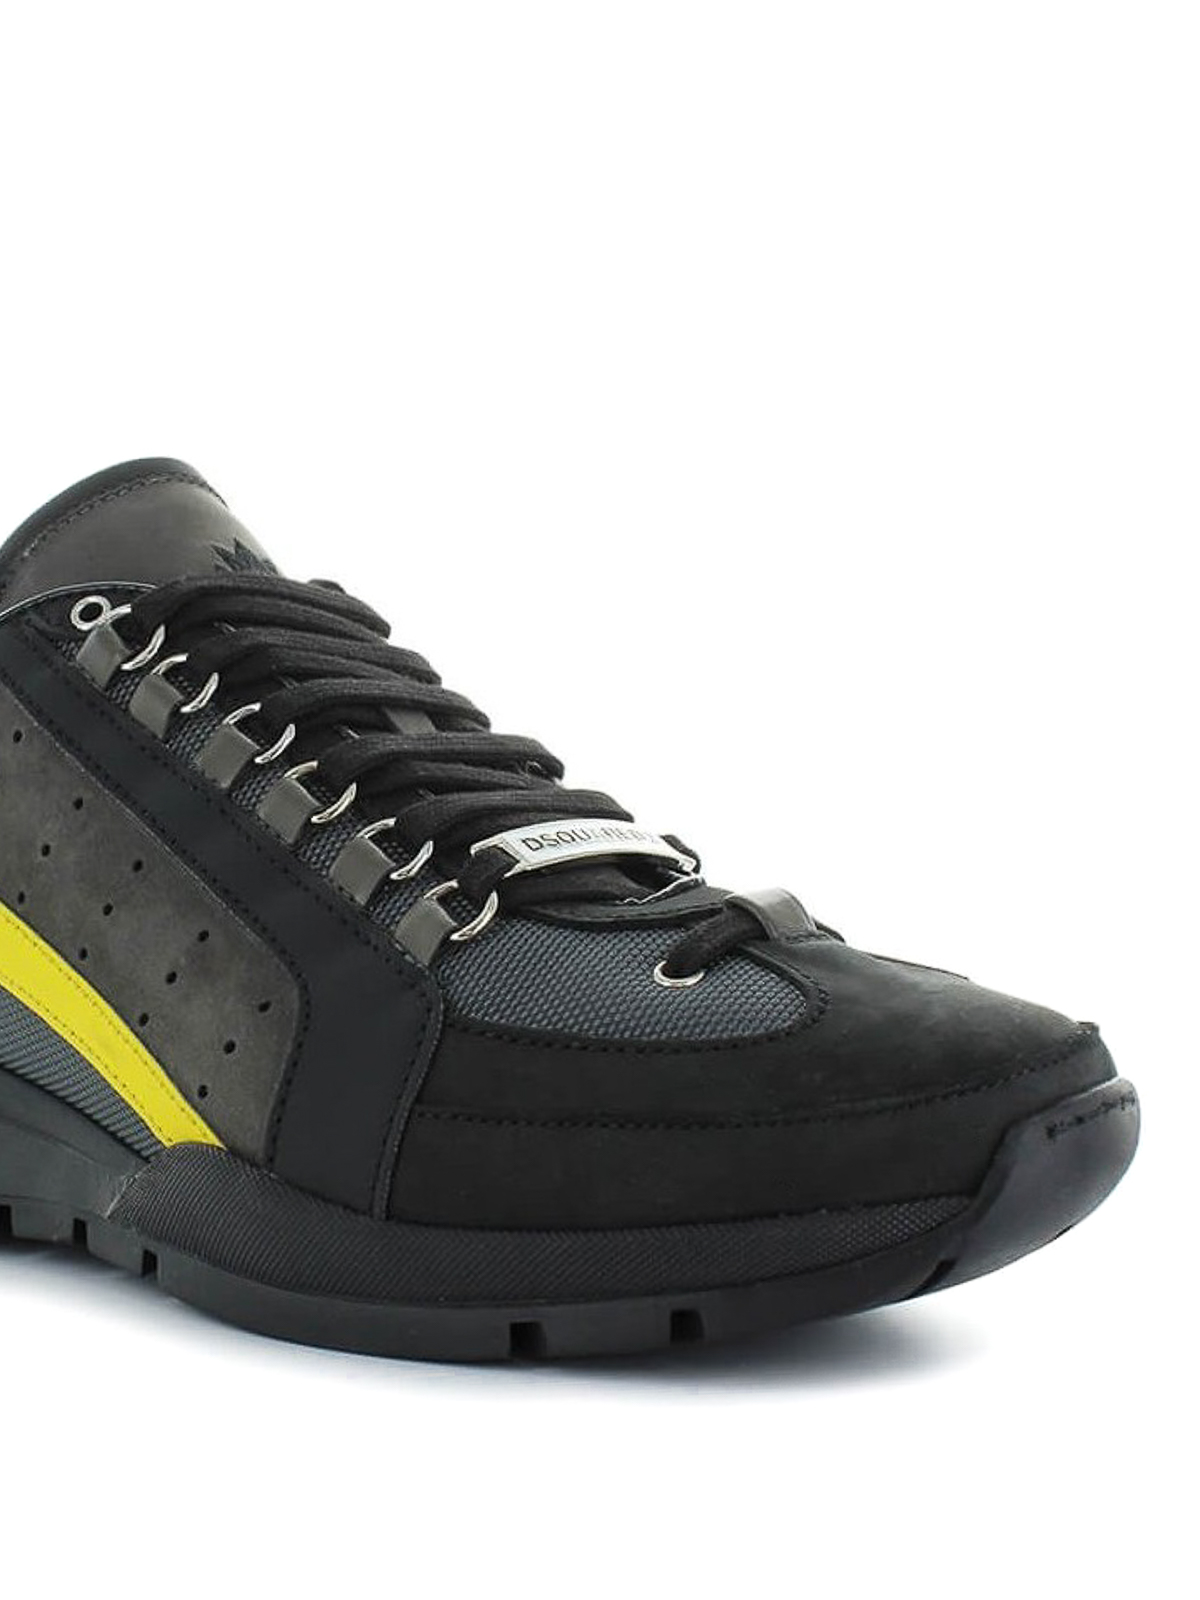 551 black and yellow sneakers